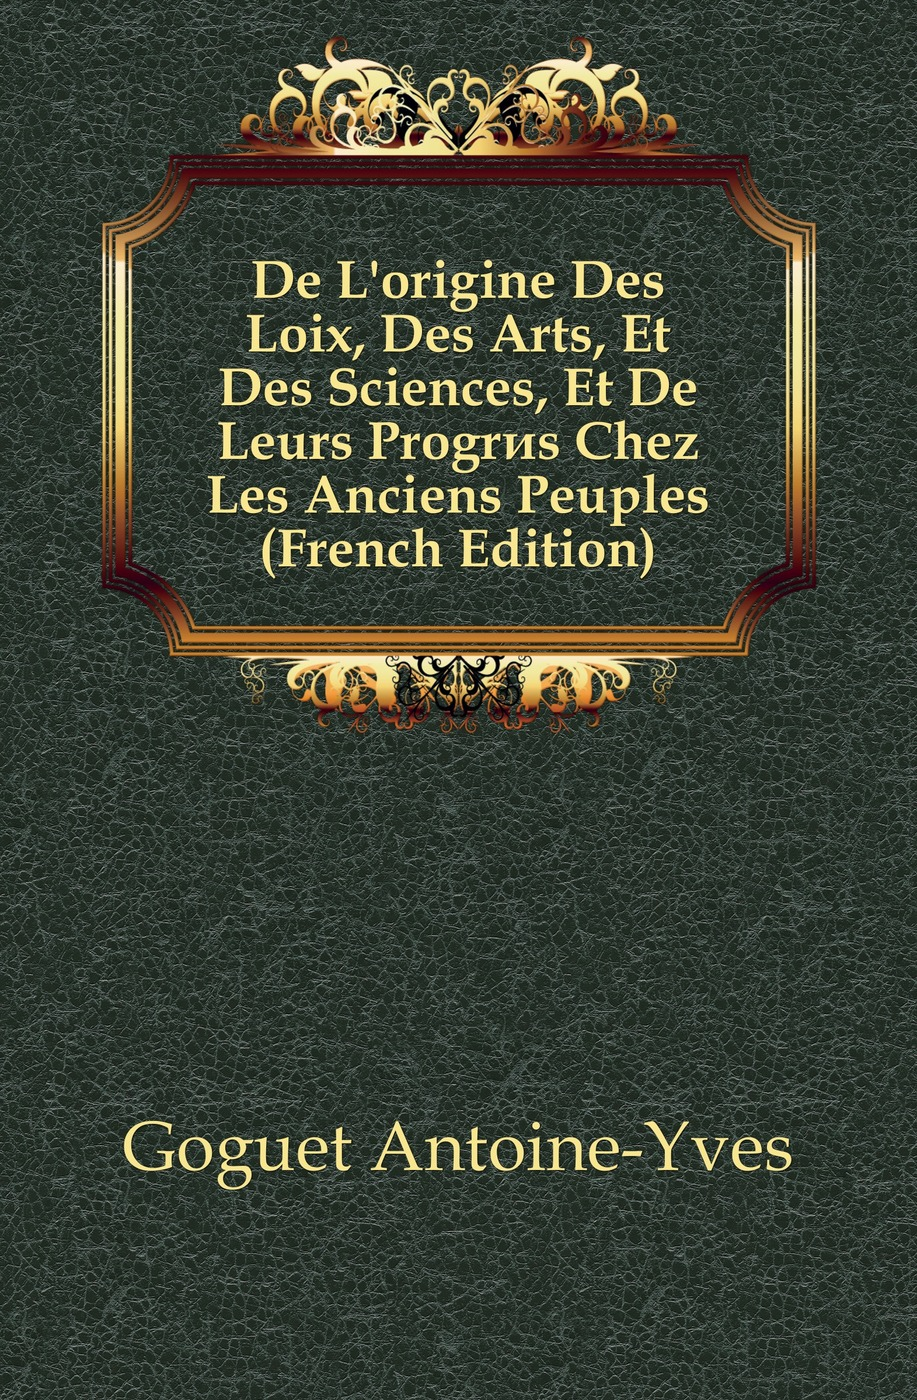 Goguet Antoine-Yves De L'origine Des Loix, Des Arts, Et Des Sciences, Et De Leurs Progres Chez Les Anciens Peuples (French Edition) sully prudhomme prose 1883 l expression dans les beaux arts application de la psychologie a l etude de l artiste et des beaux arts french edition